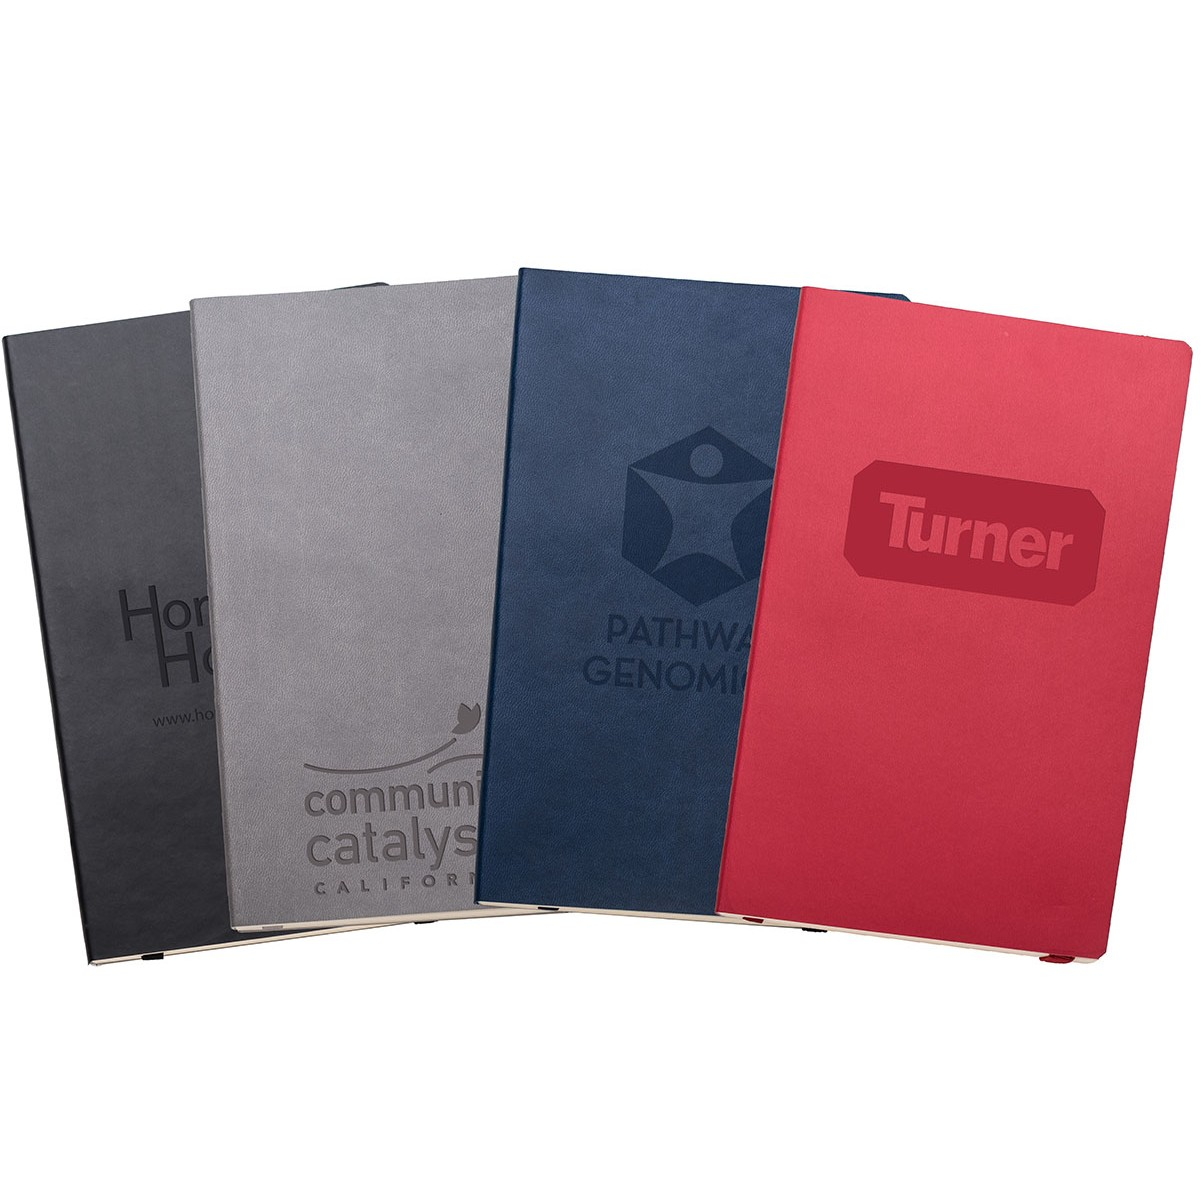 5 1/4 x 8 1/4 Go Soft Cover Journals